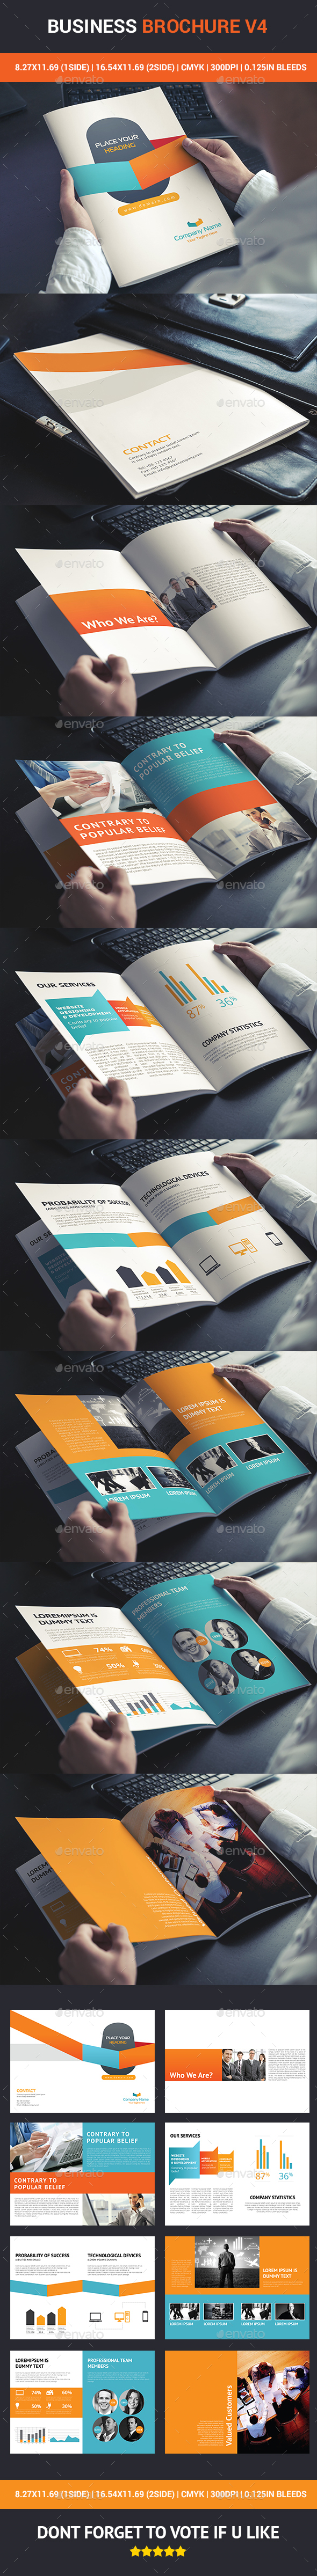 Business Brochure v4 - Brochures Print Templates